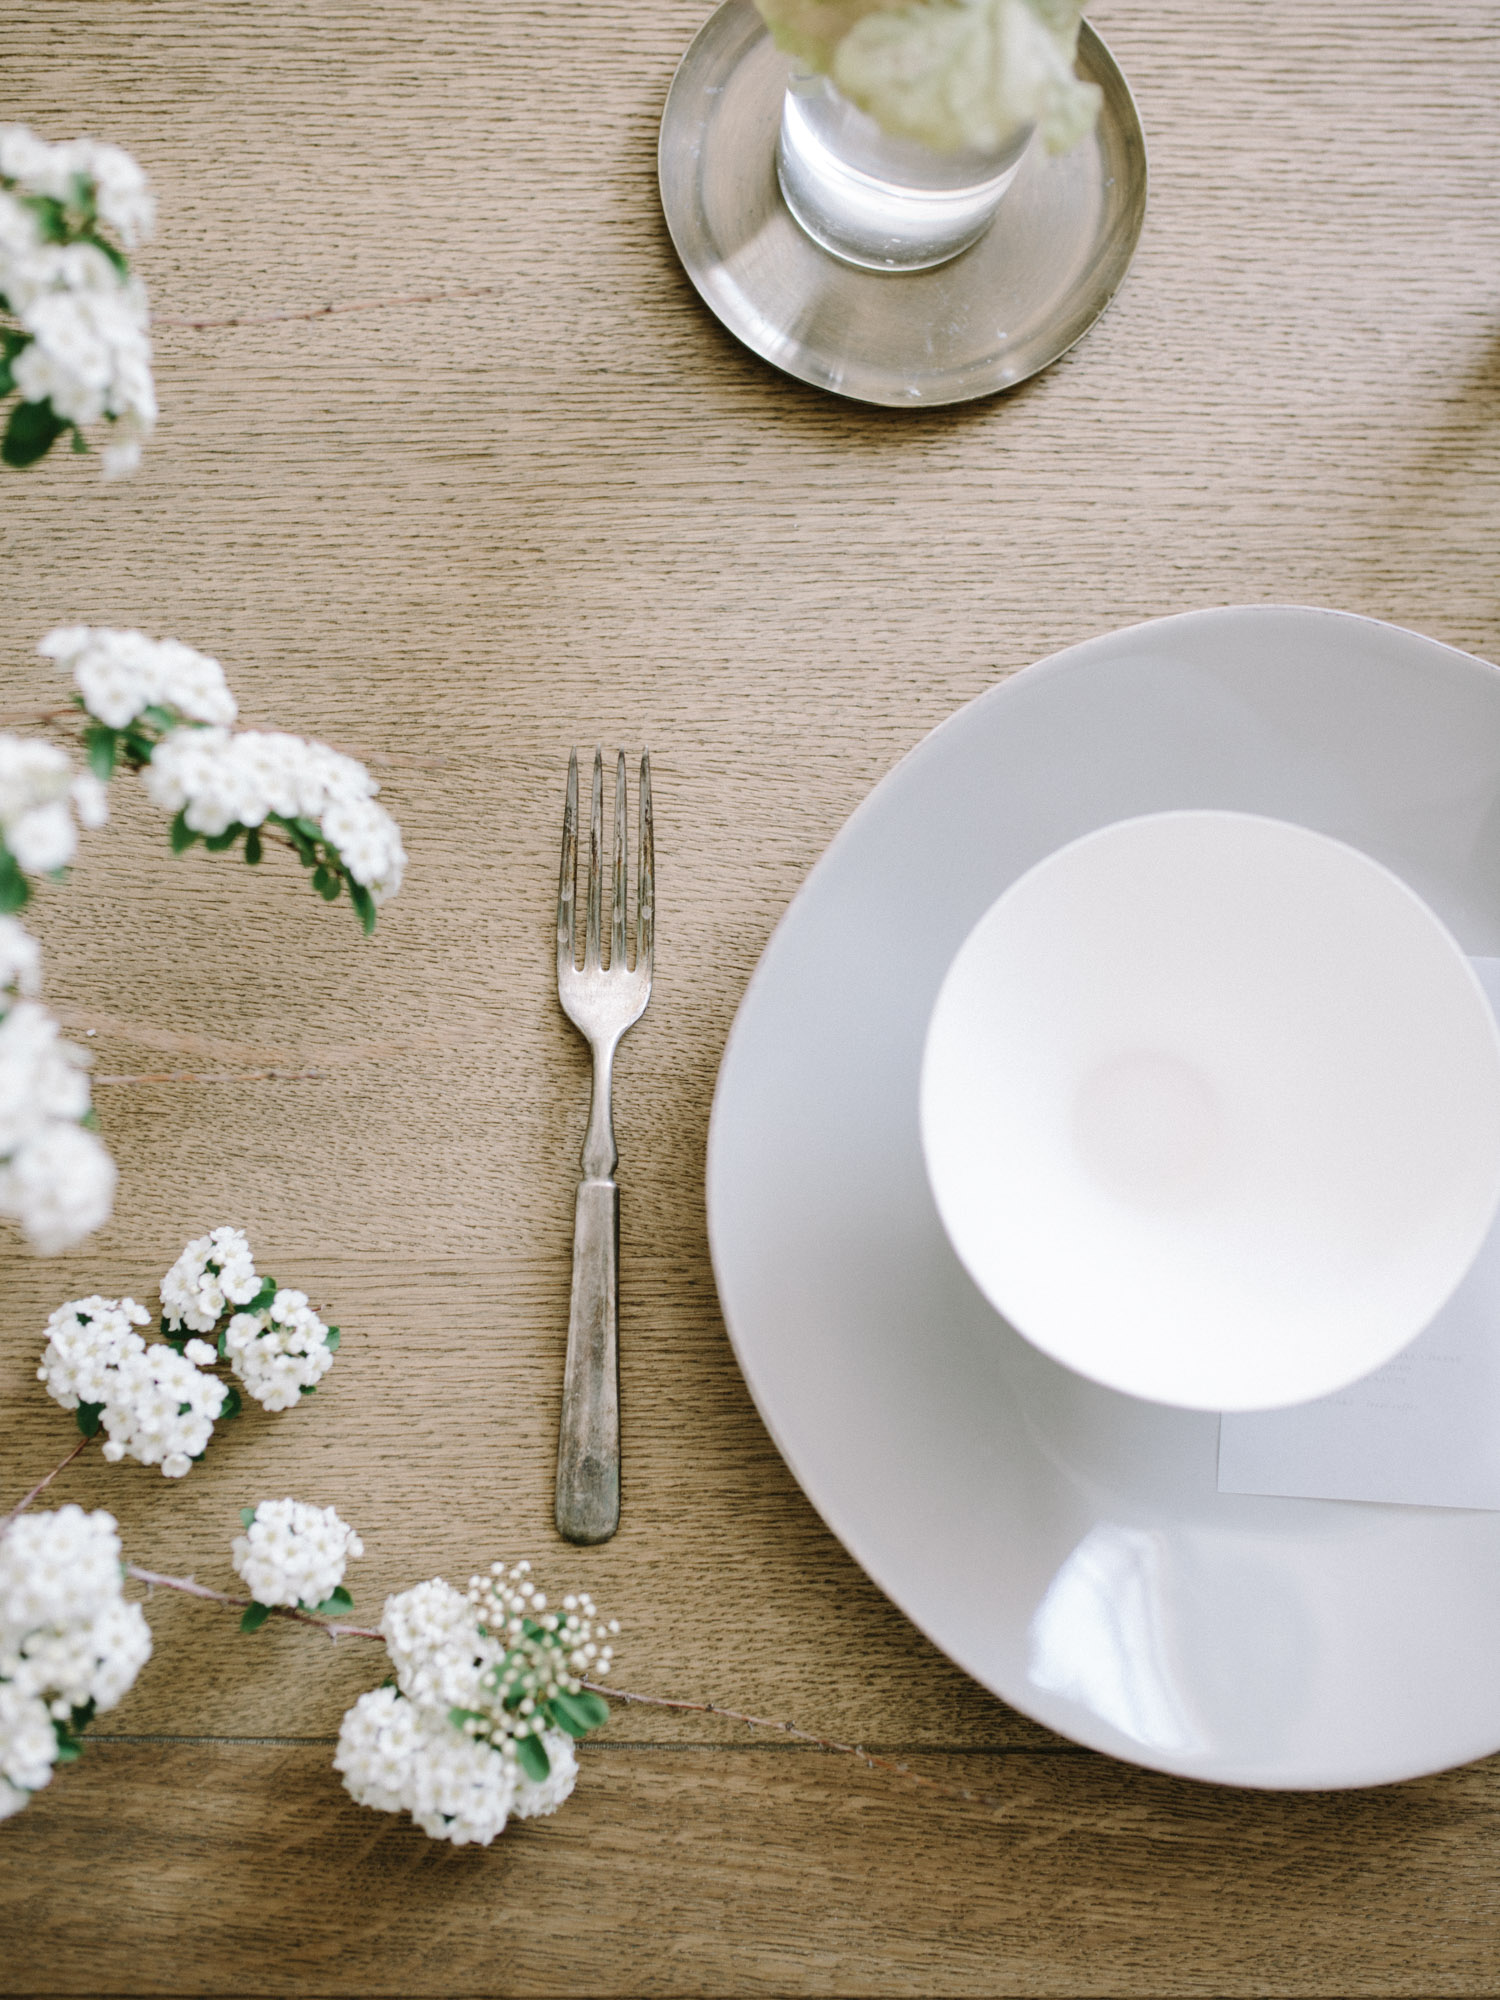 white flowering branches encroach upon a setting at a wood table; a vintage fork with beautiful patina, and a white bowl sitting atop a blue plate.